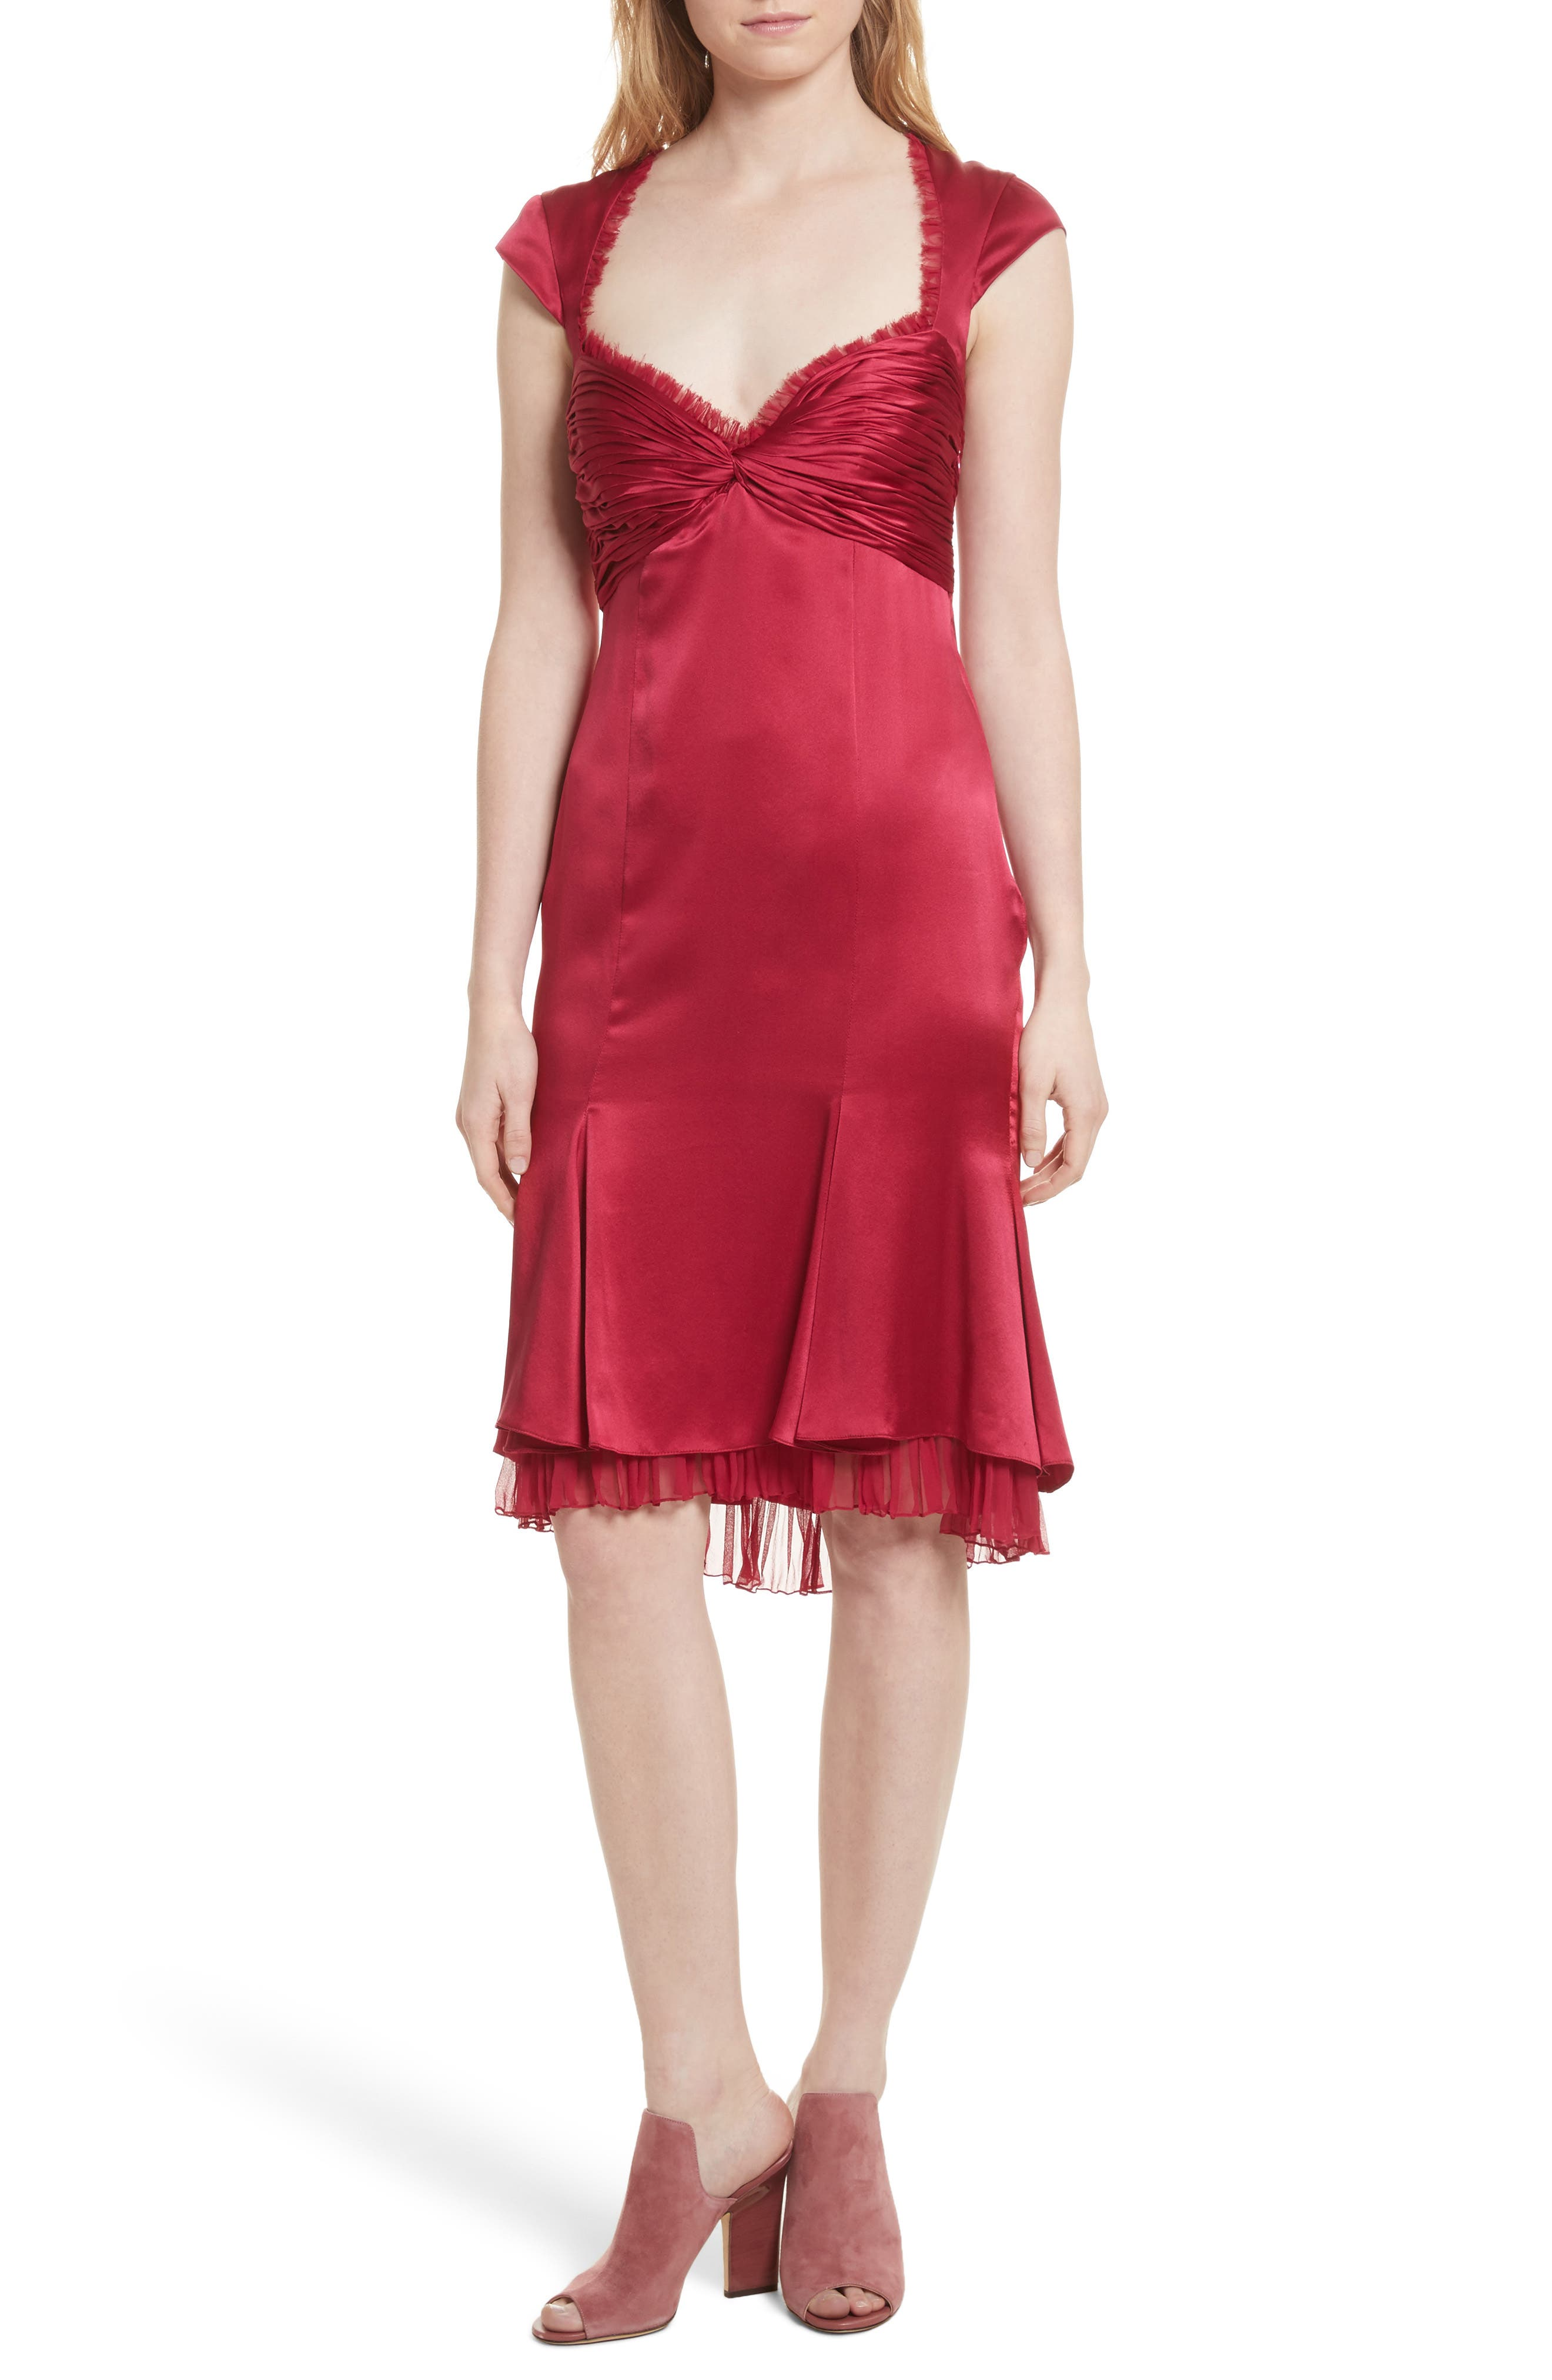 Marnie Satin Dress,                             Main thumbnail 1, color,                             Cerise